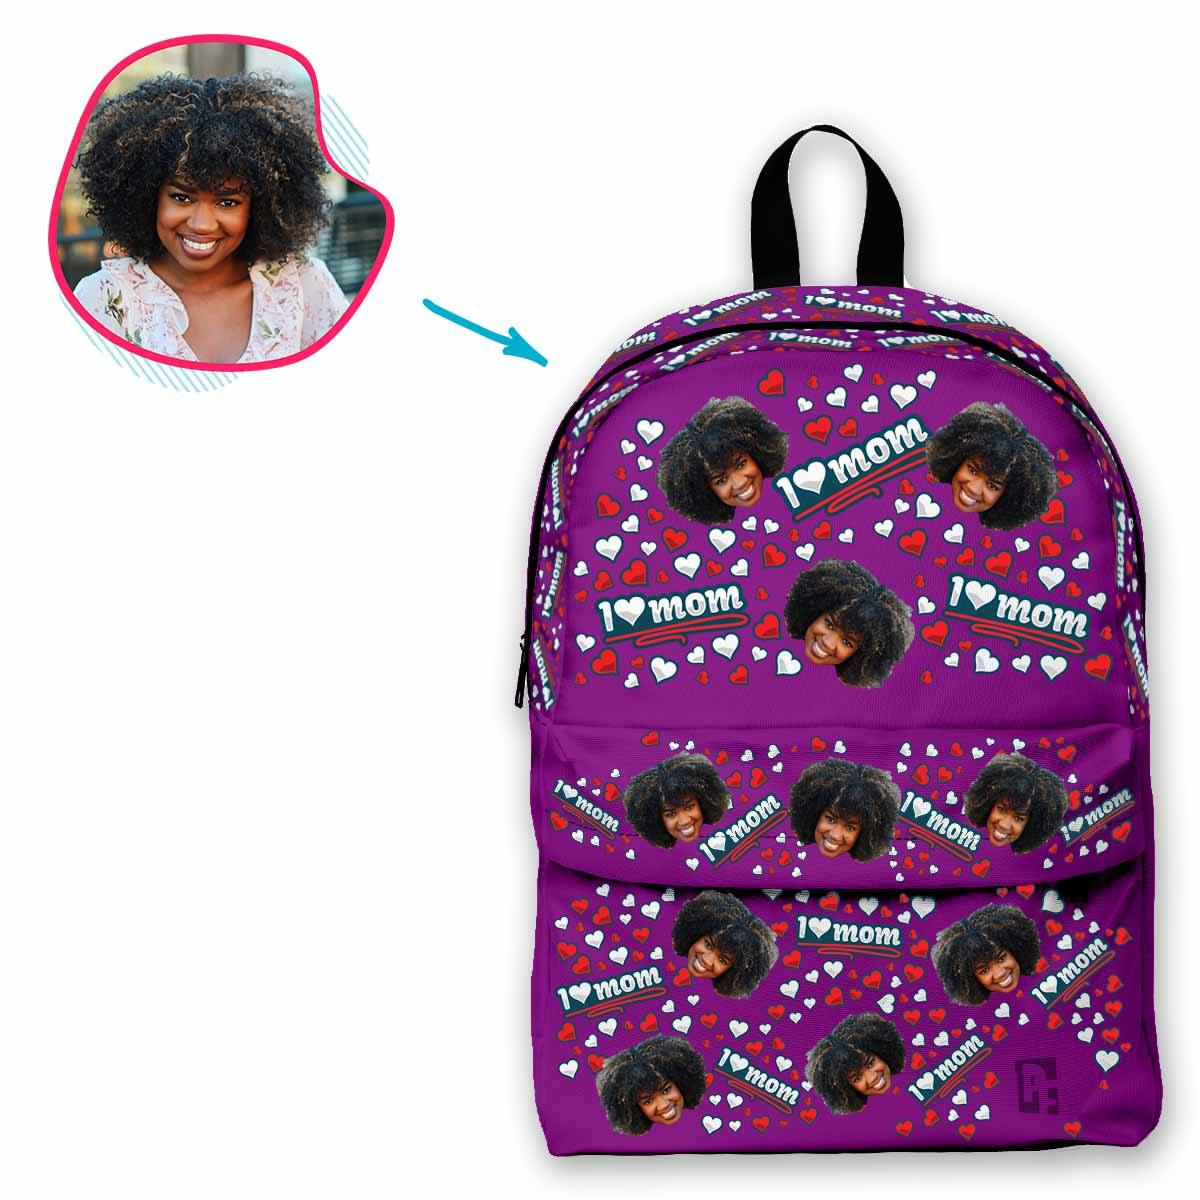 purple Love Mom classic backpack personalized with photo of face printed on it